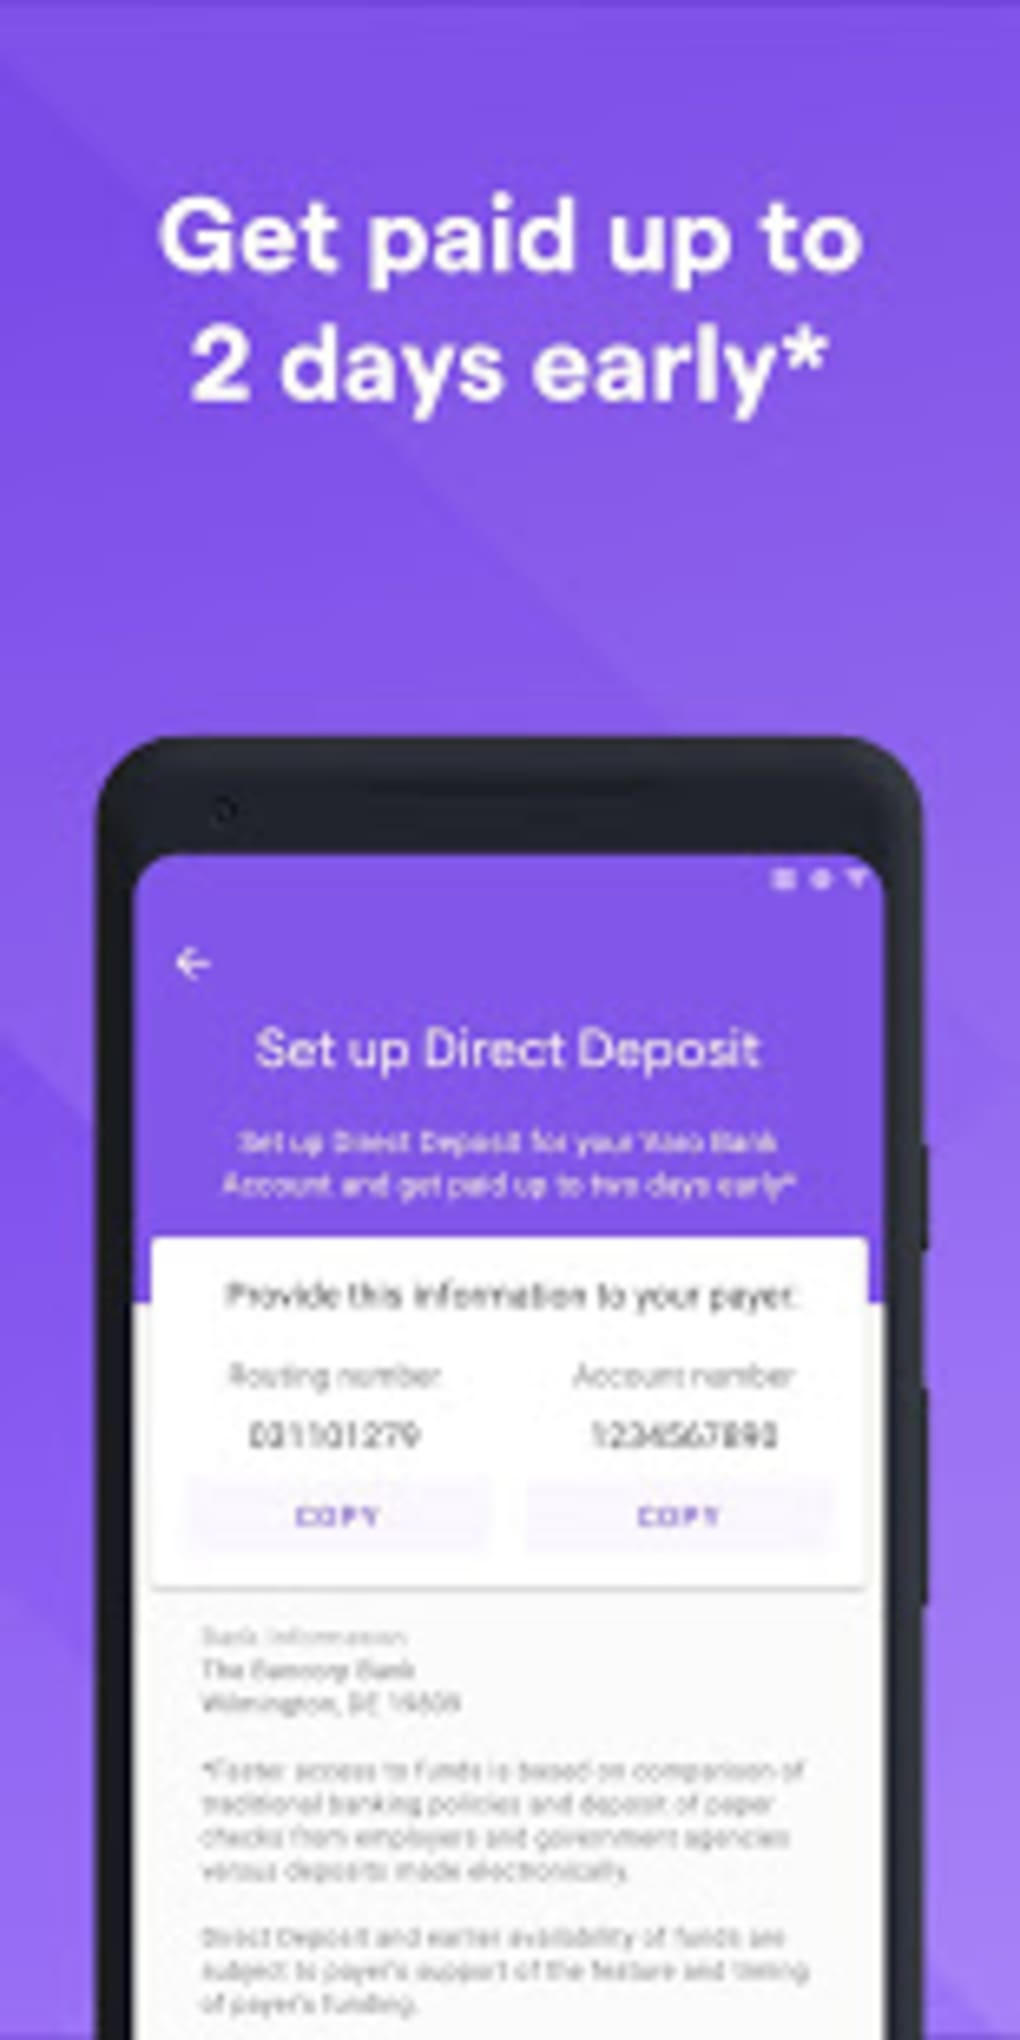 Varo Mobile Banking and Saving for Android - Download